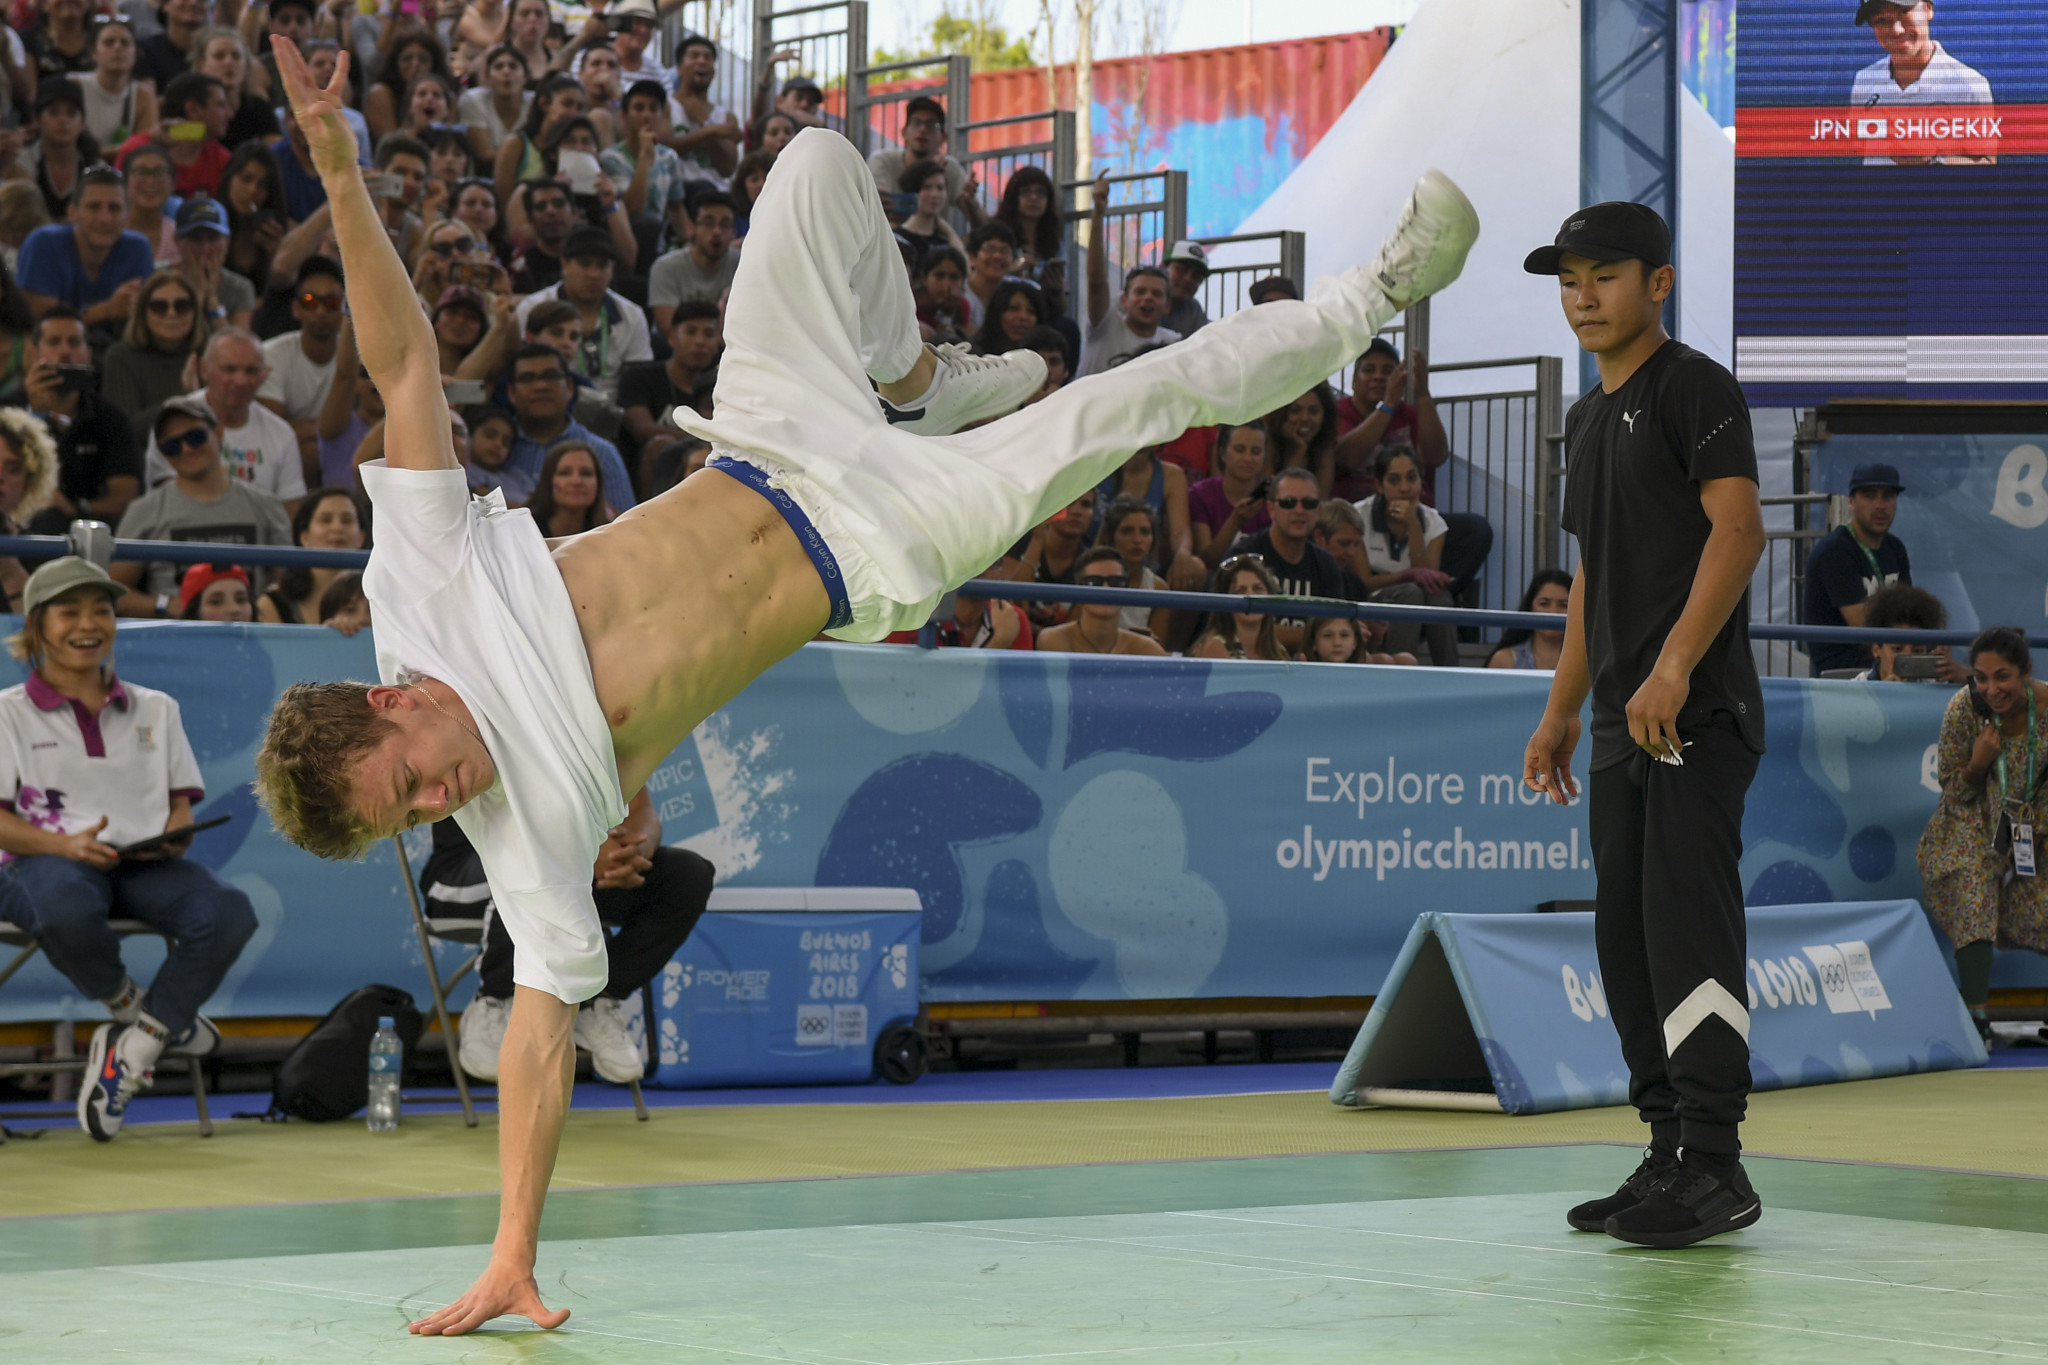 Urban Games places on the line at 2019 World Breaking Championship in Nanjing